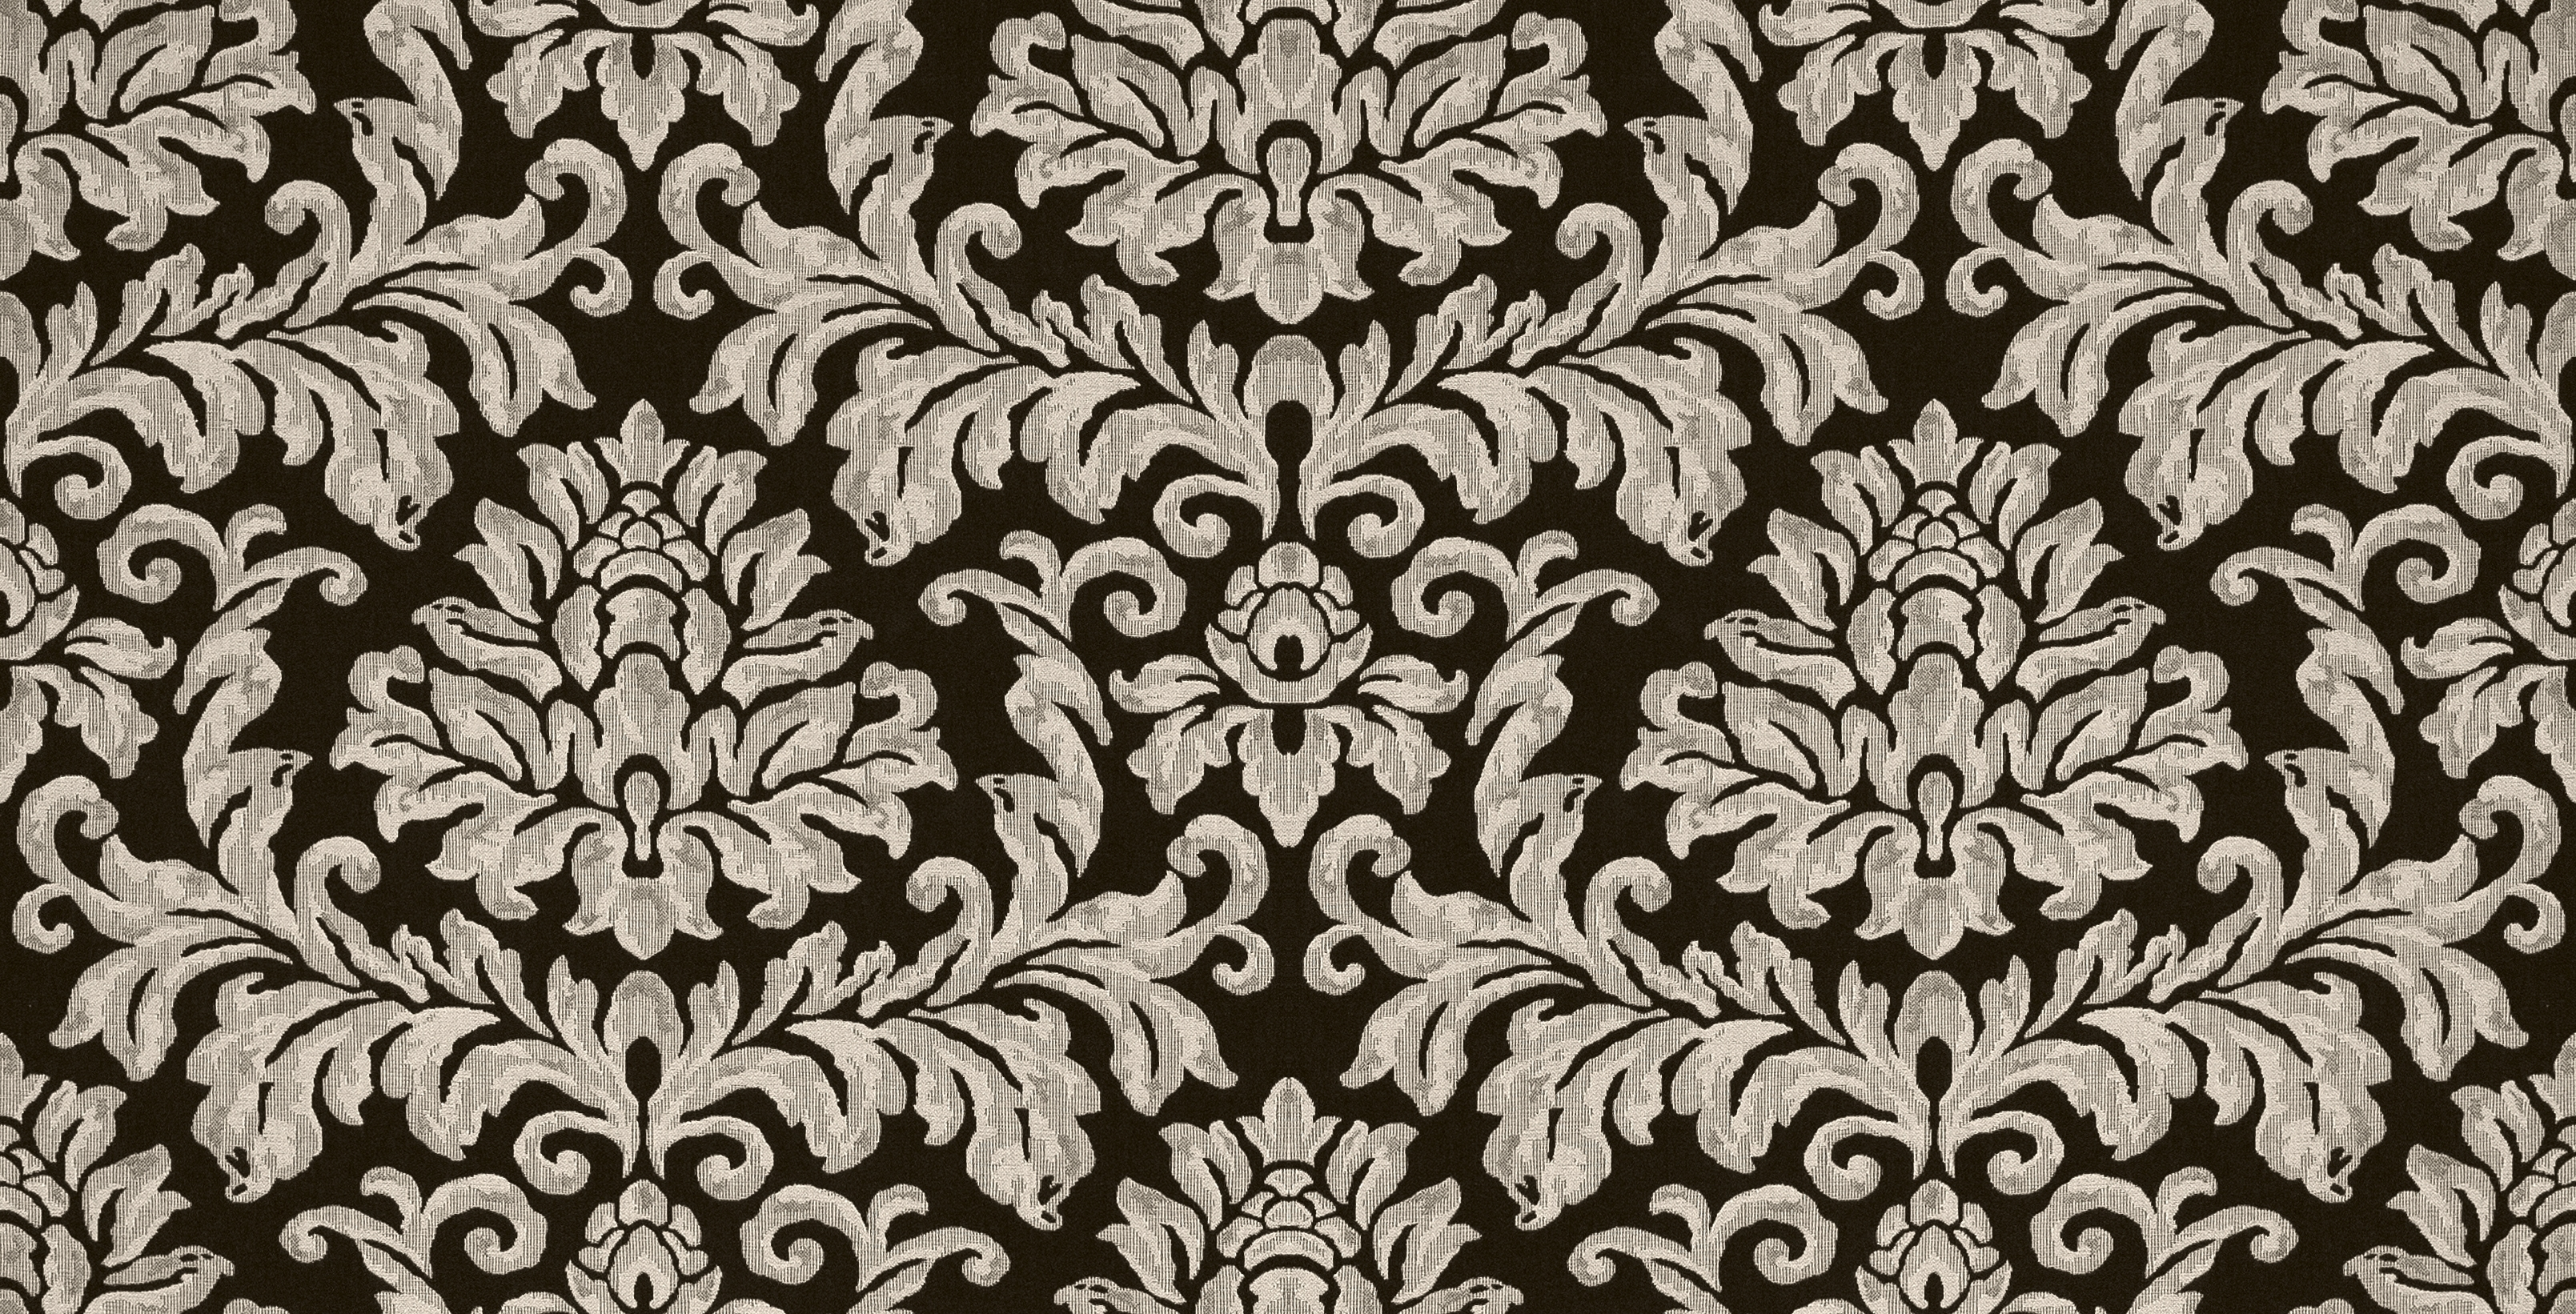 Damask Fabric Wall Cover For Most Up To Date Damask Fabric Wall Art (View 14 of 15)